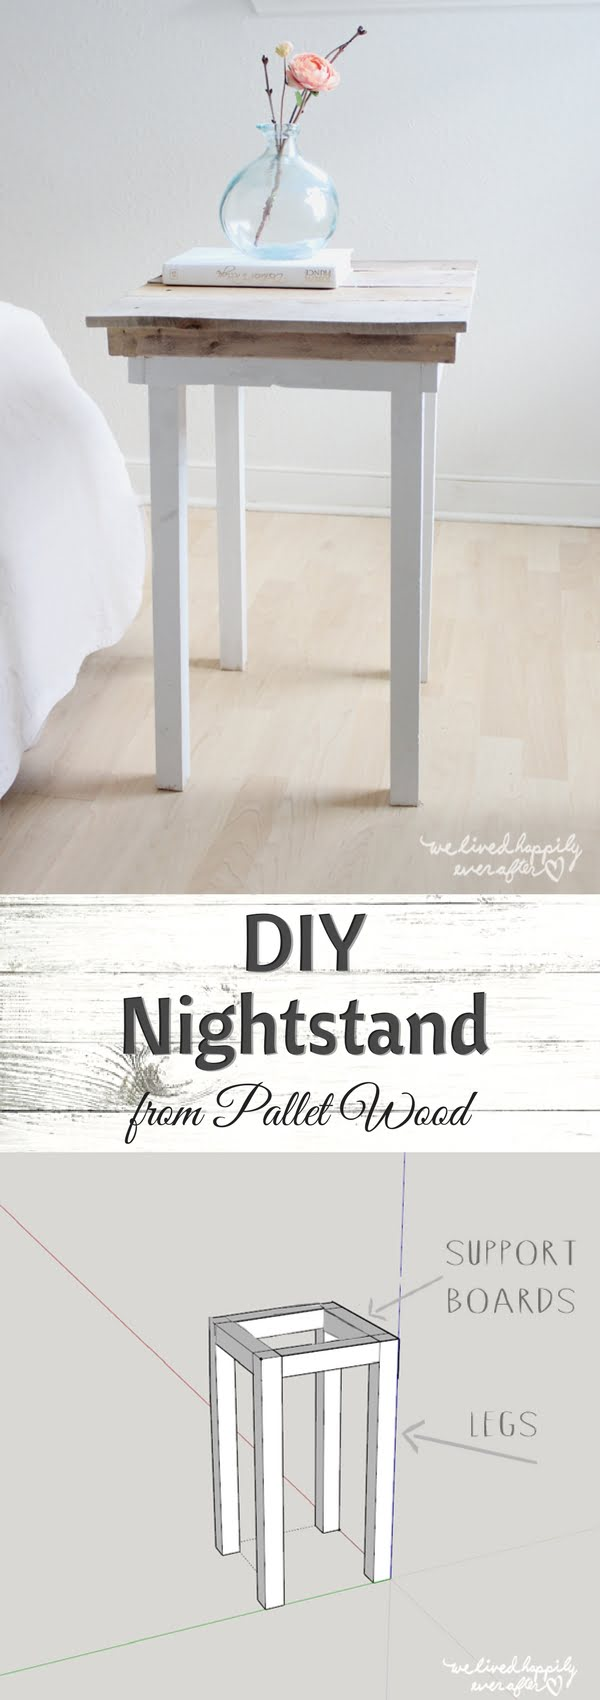 12 Easy DIY Nightstands That You Can Build on a Budget - Check out how to build this easy DIY nightstand from pallet wood